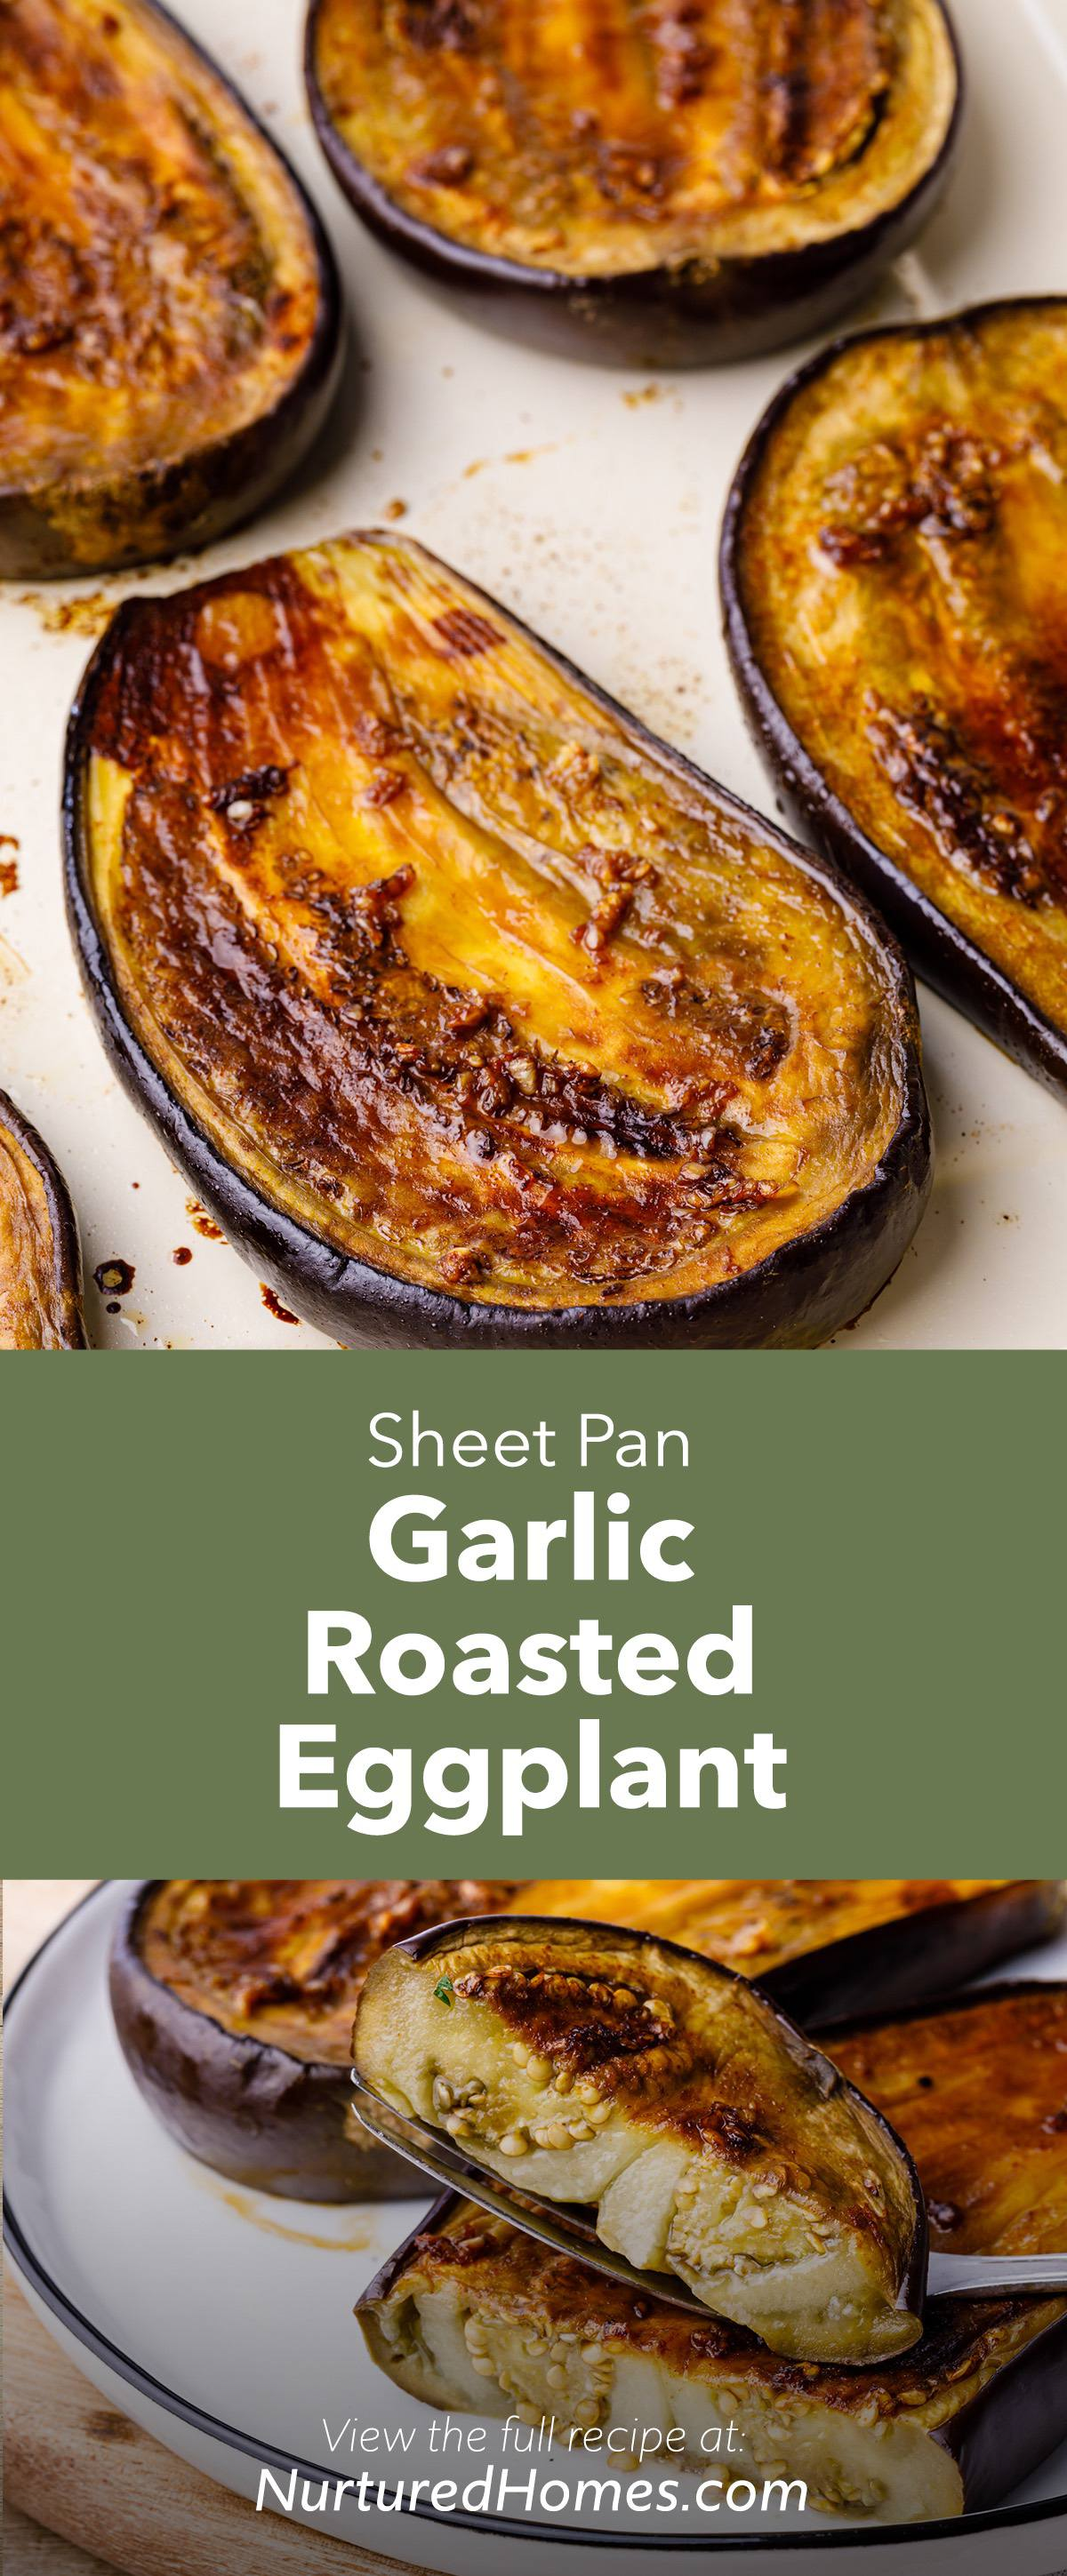 Perfect Sheet Pan Garlic Roasted Eggplant (Easy Oven Roasted Recipe)